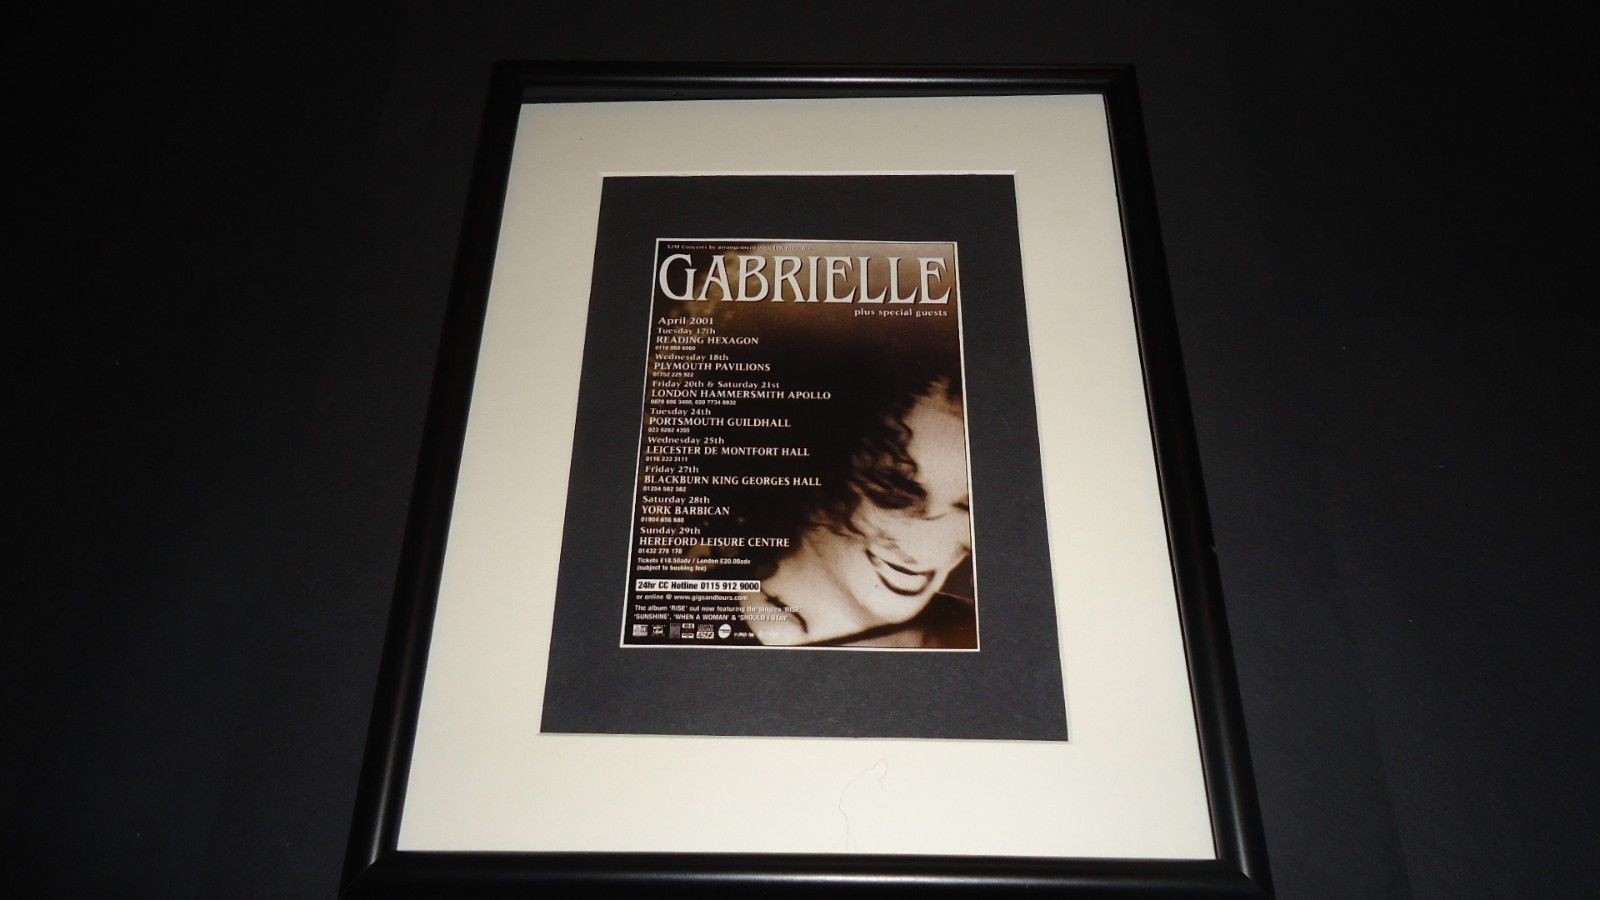 Primary image for Gabrielle-2001 UK Tour-original advert framed